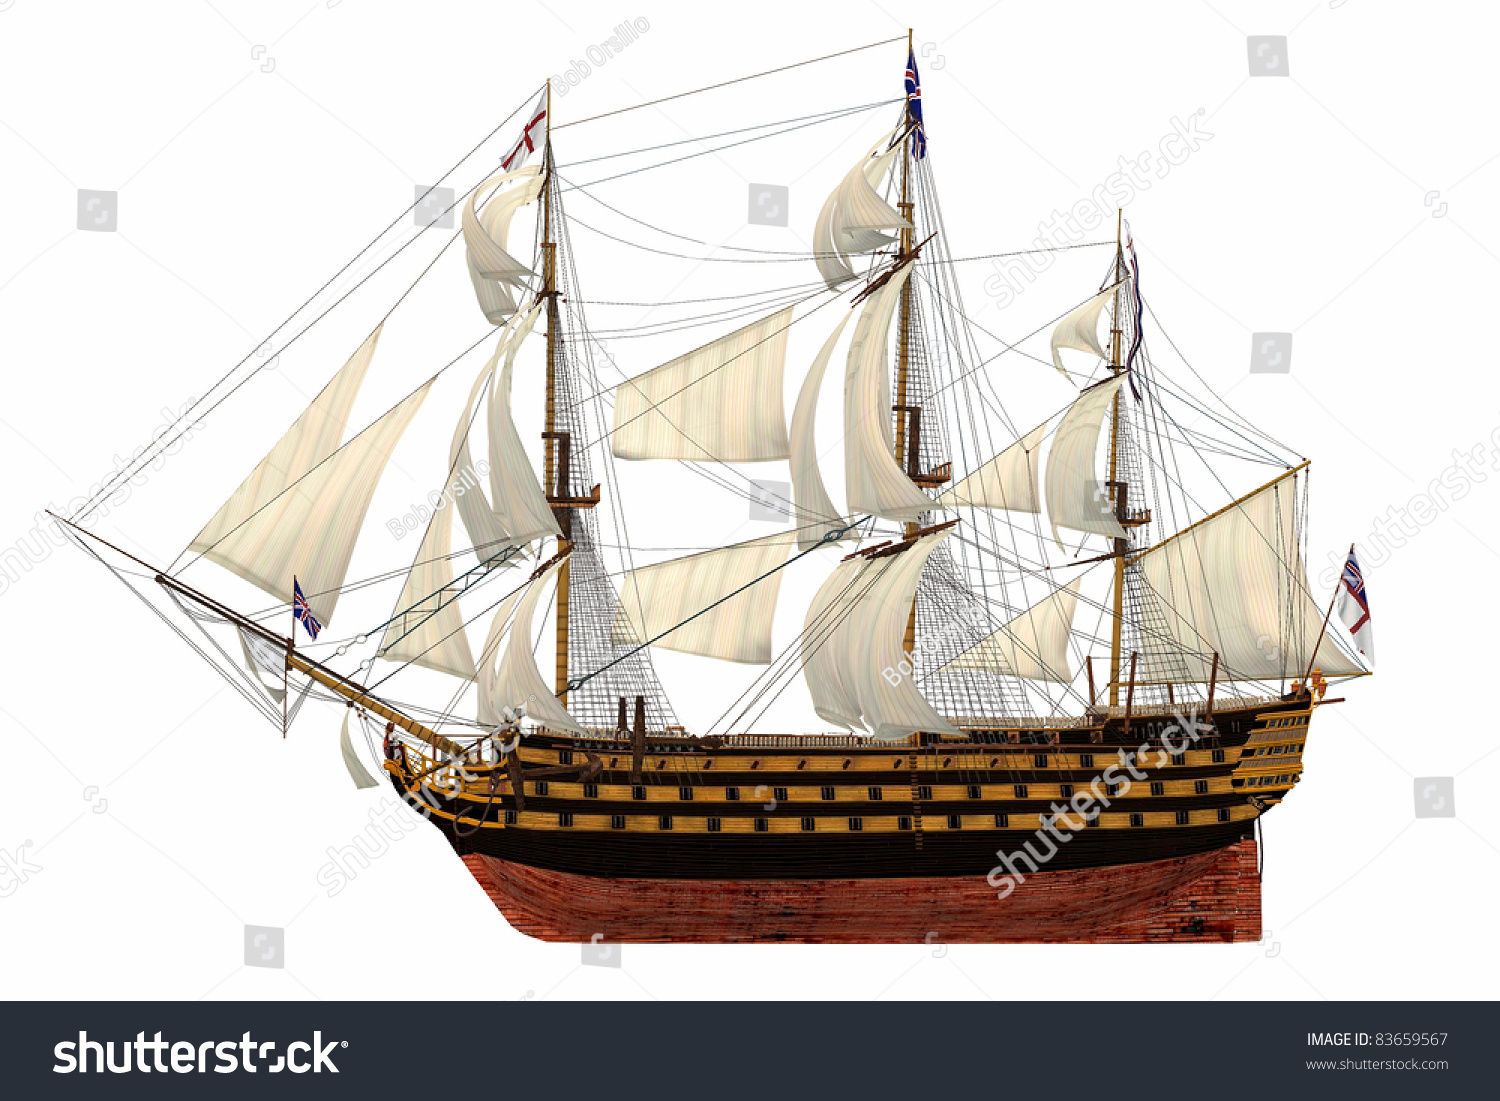 Royalty Free Stock Illustration of HMS Royal Navy Style Tall Ship.